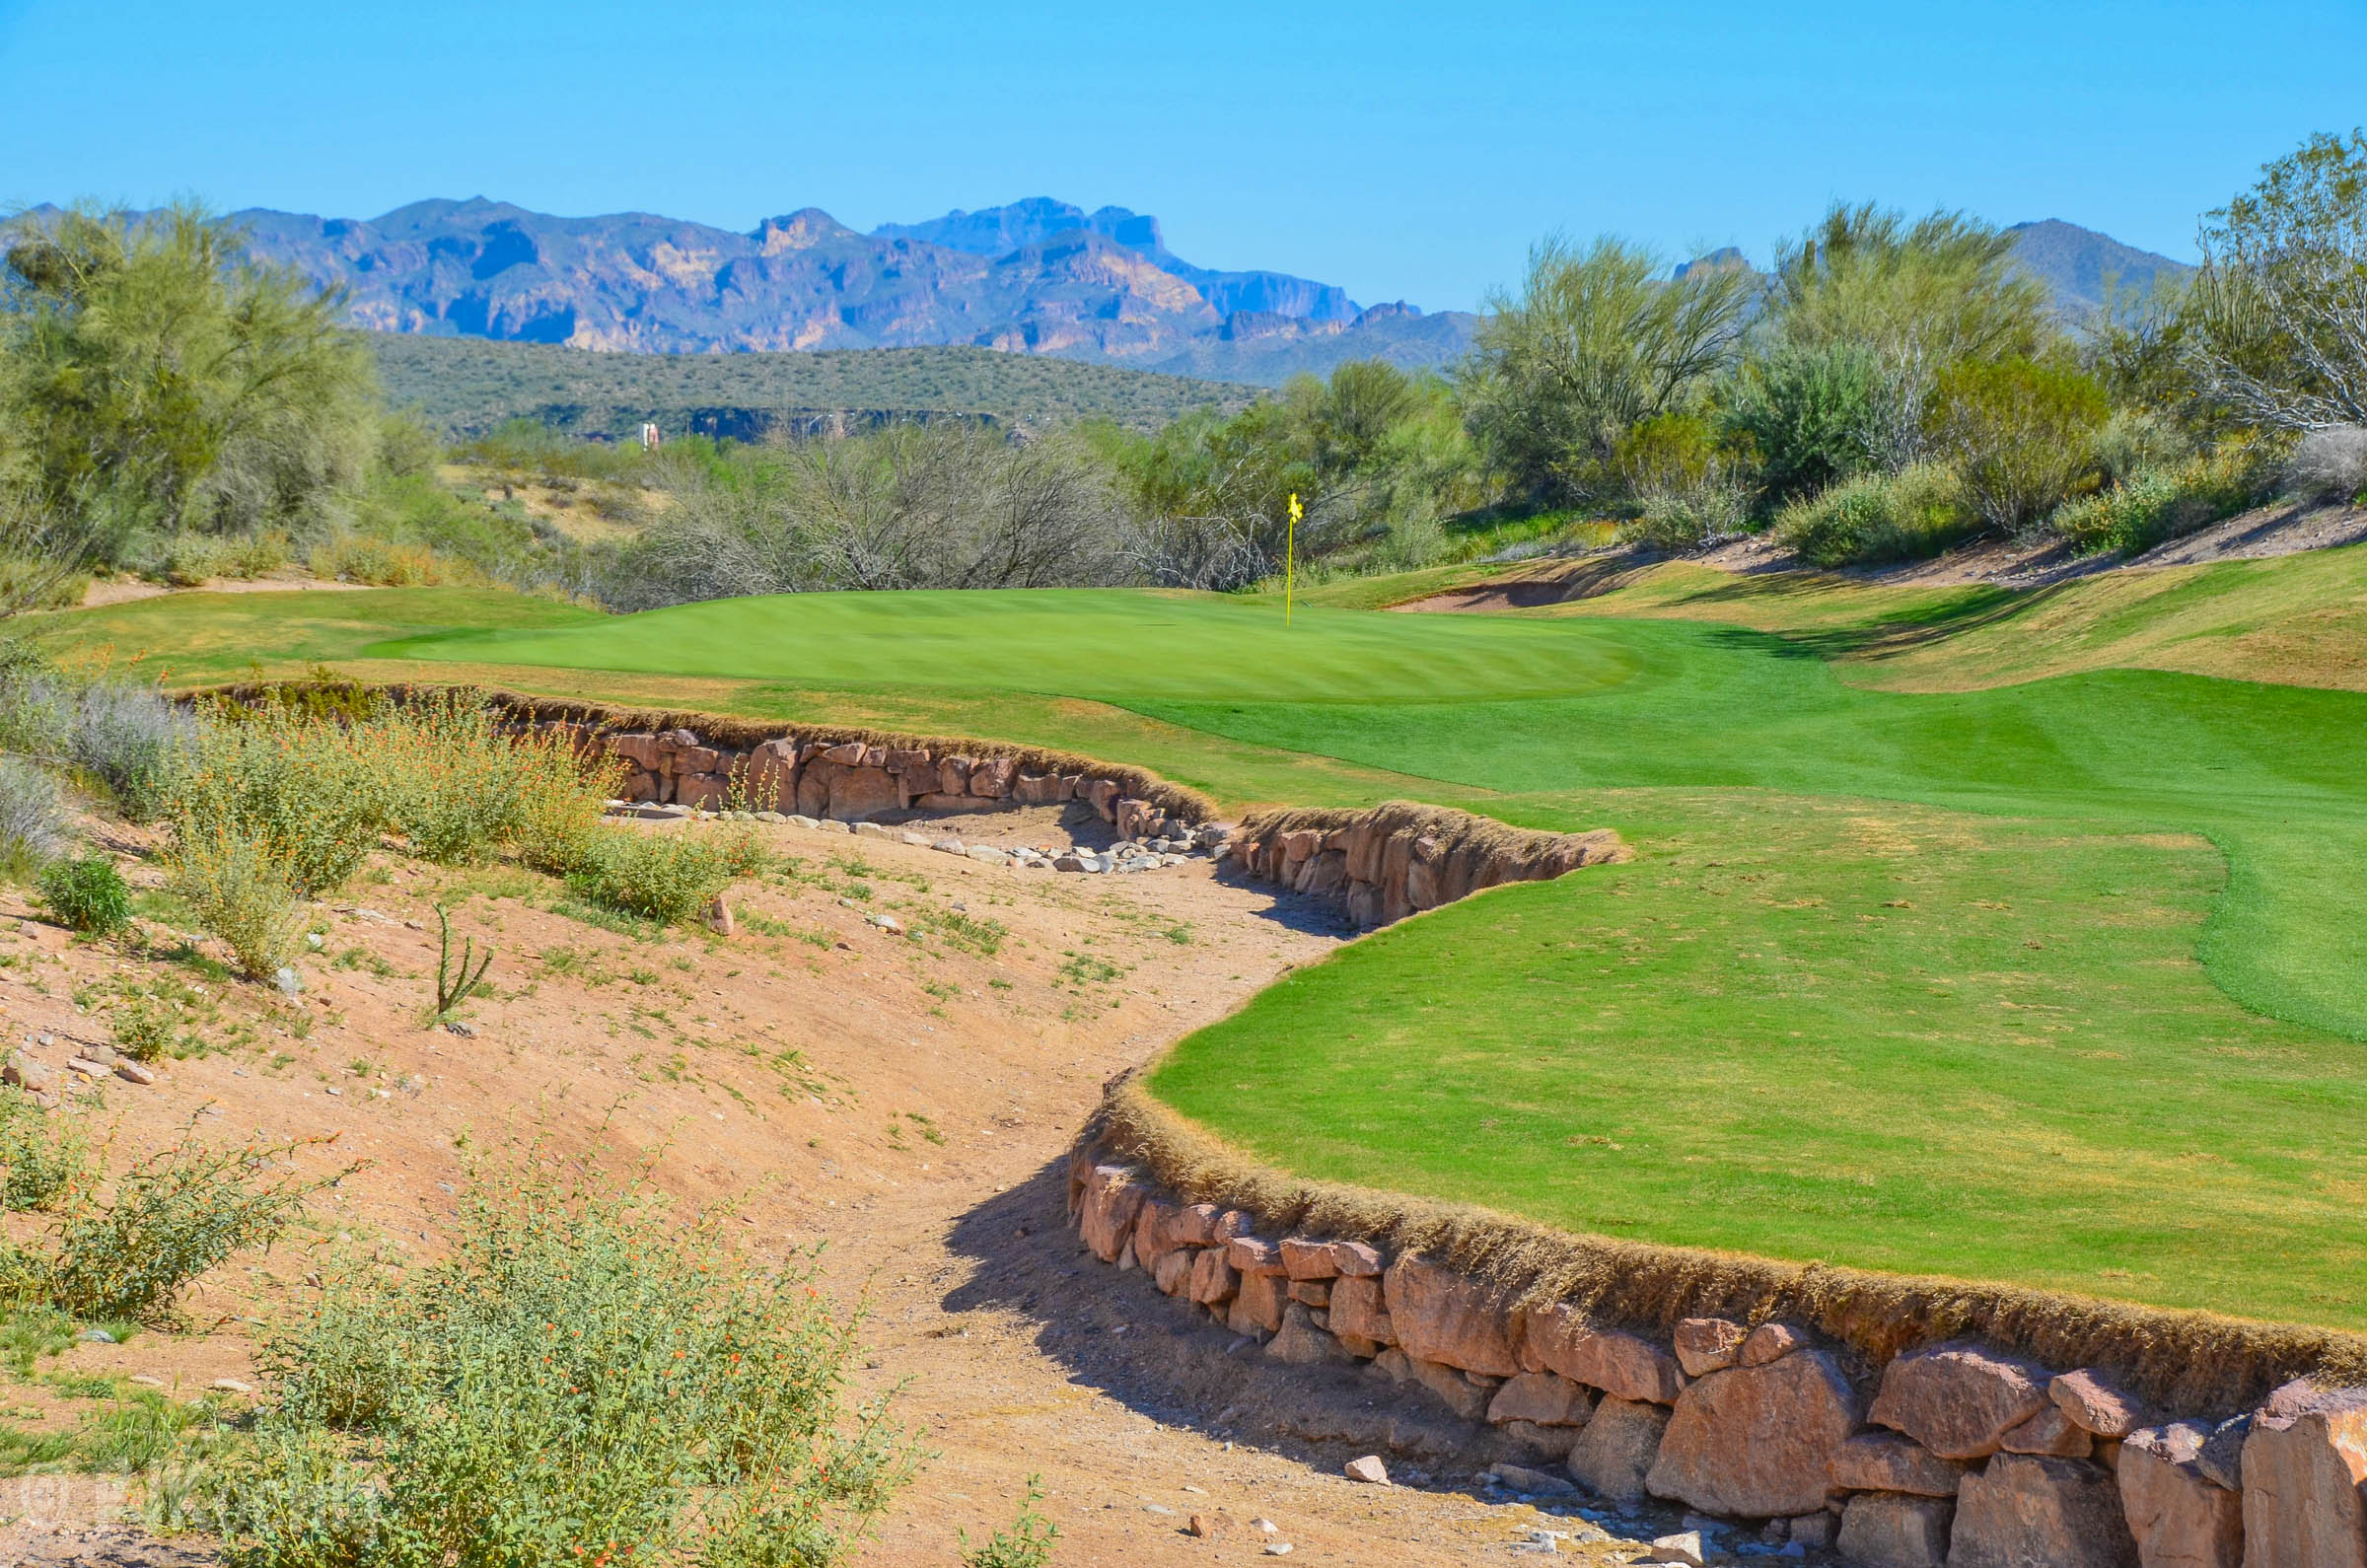 The 8th hole on the Cholla Course at We-Ko-Pa